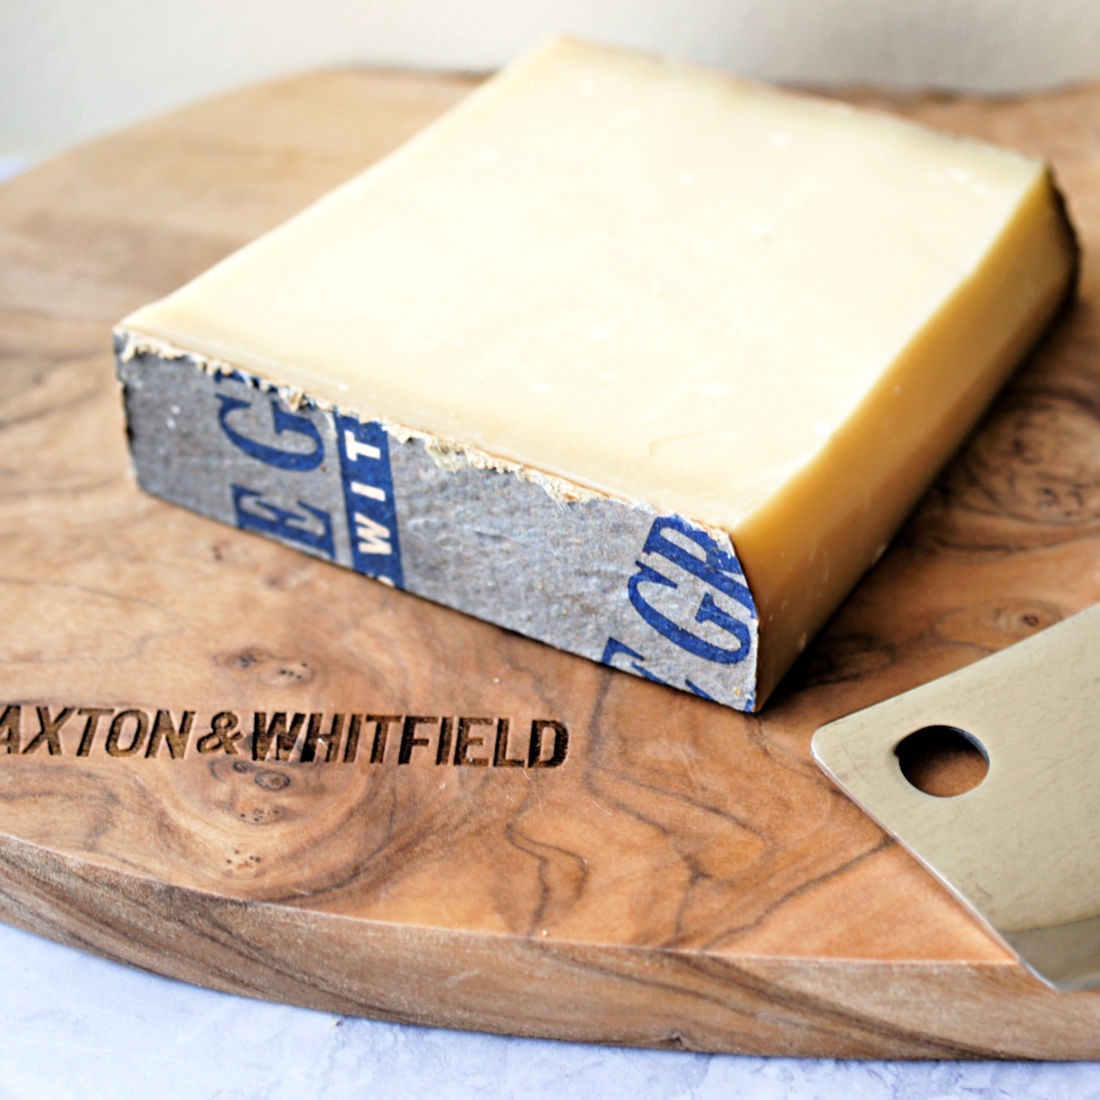 451-Le-Gruyere-Cheese-Web-Main-Low-Res